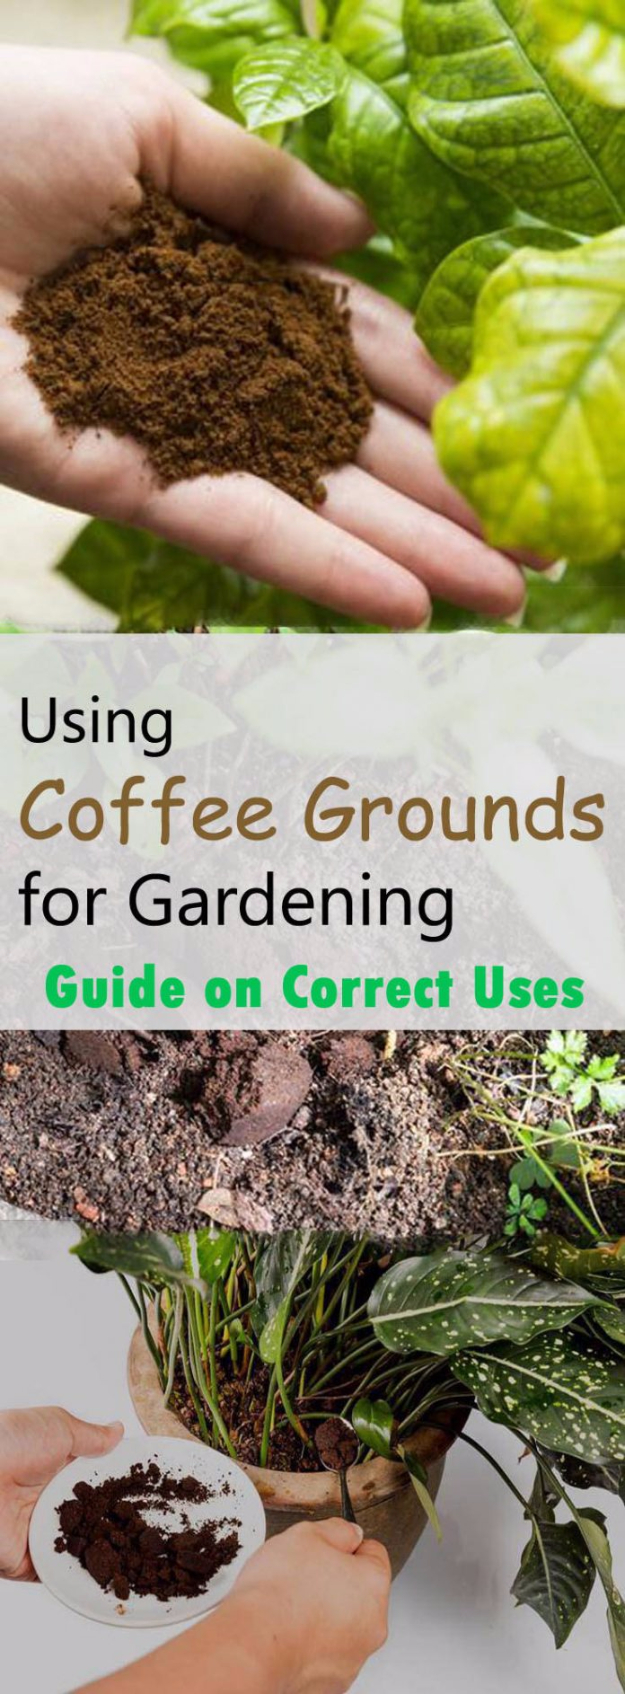 15 Awesome Landscaping And Garden Hacks You'll Find Useful